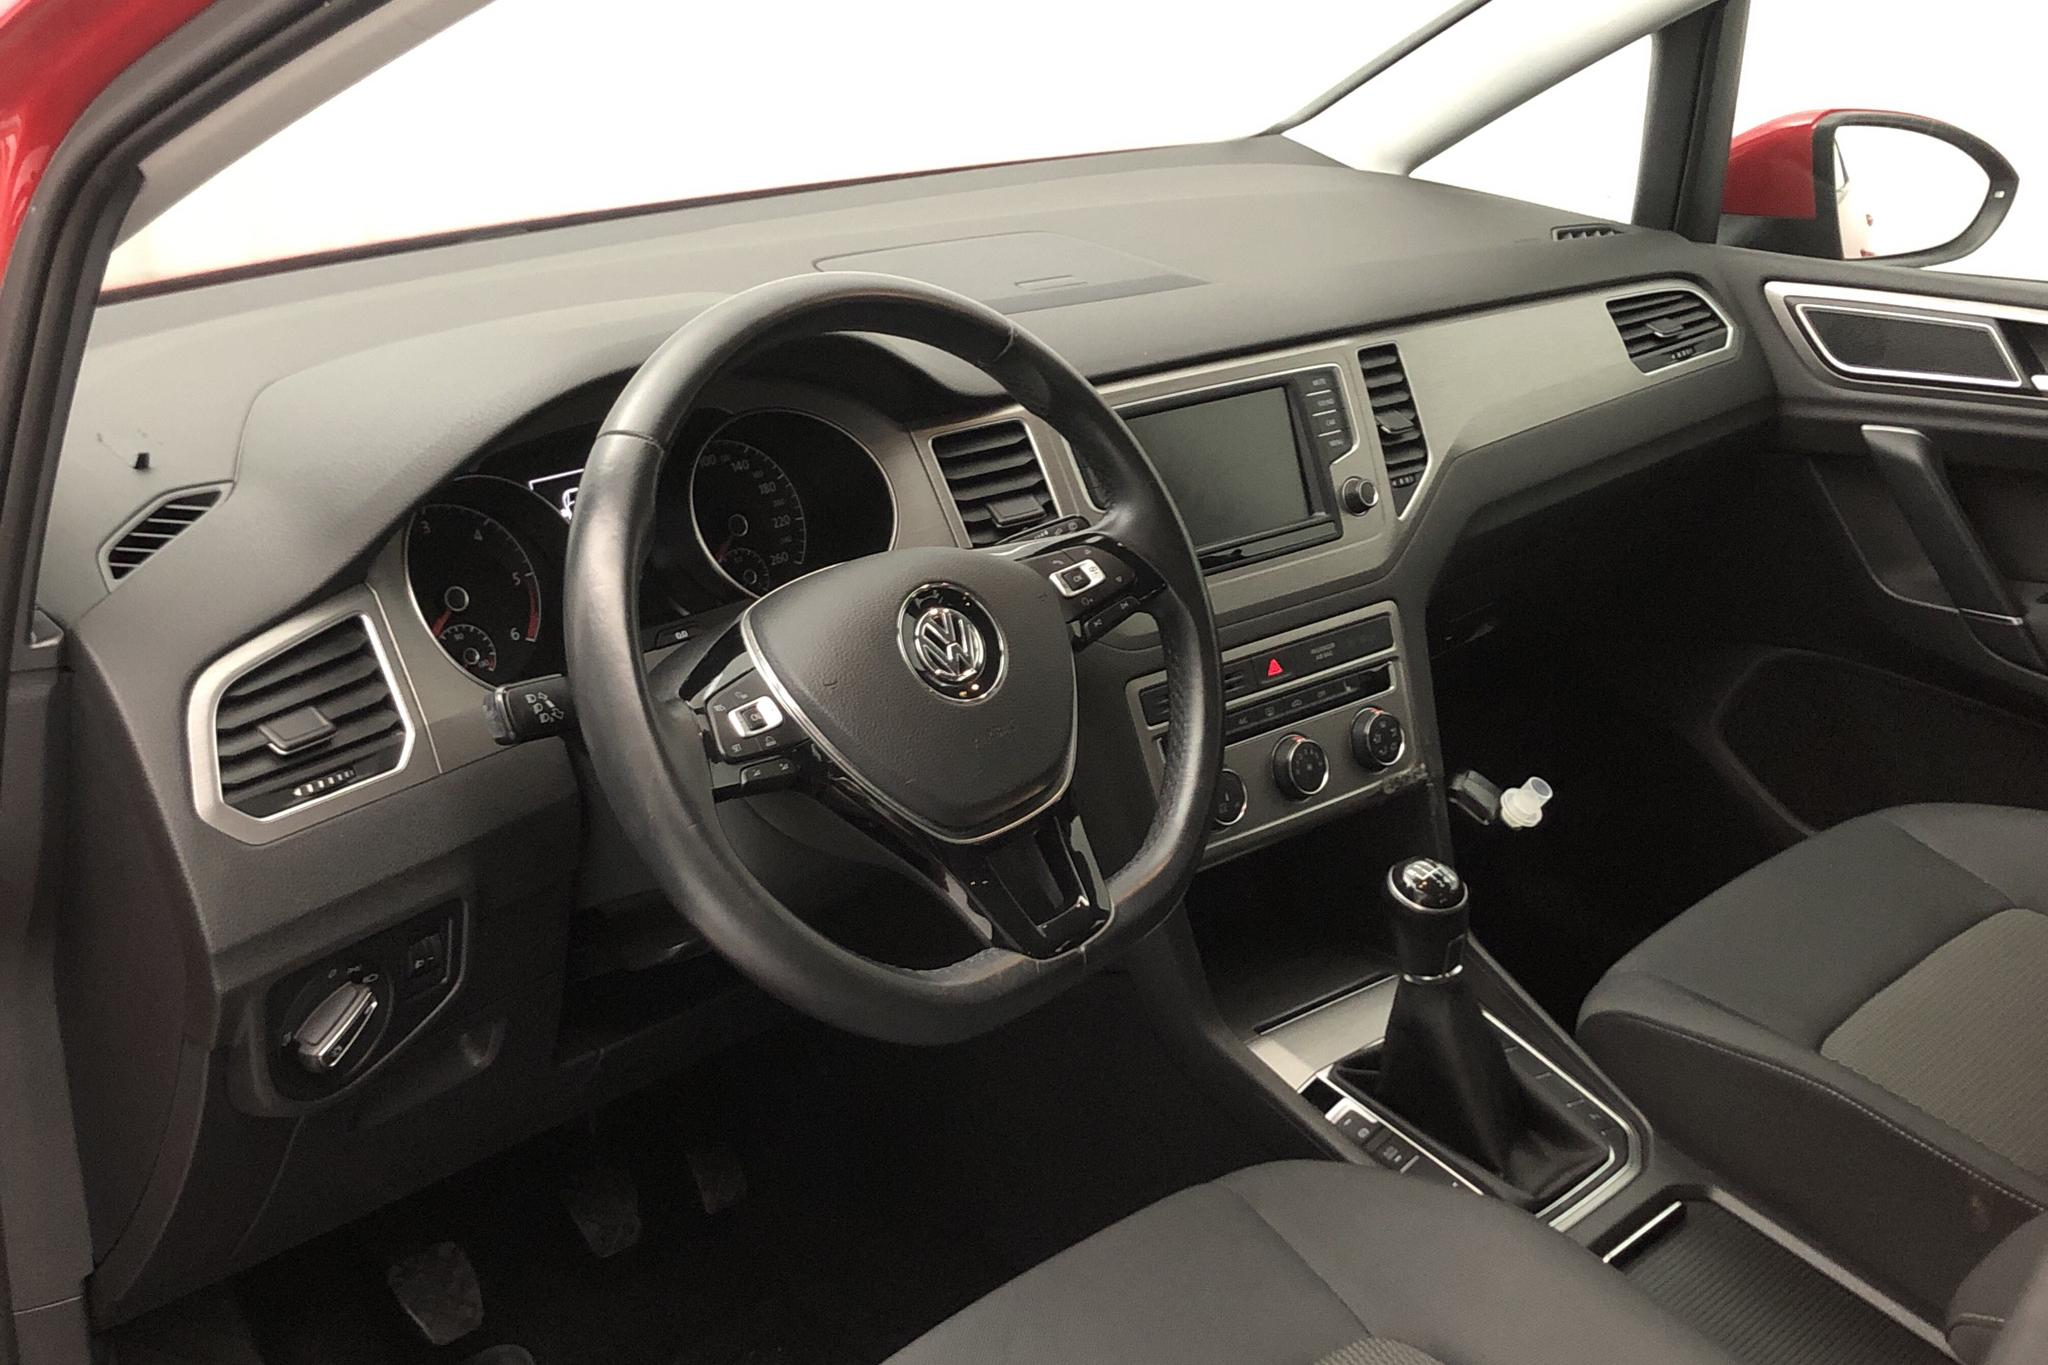 VW Golf VII 1.6 TDI BlueMotion Technology Sportsvan (110hk) - 6 621 mil - Manuell - röd - 2016